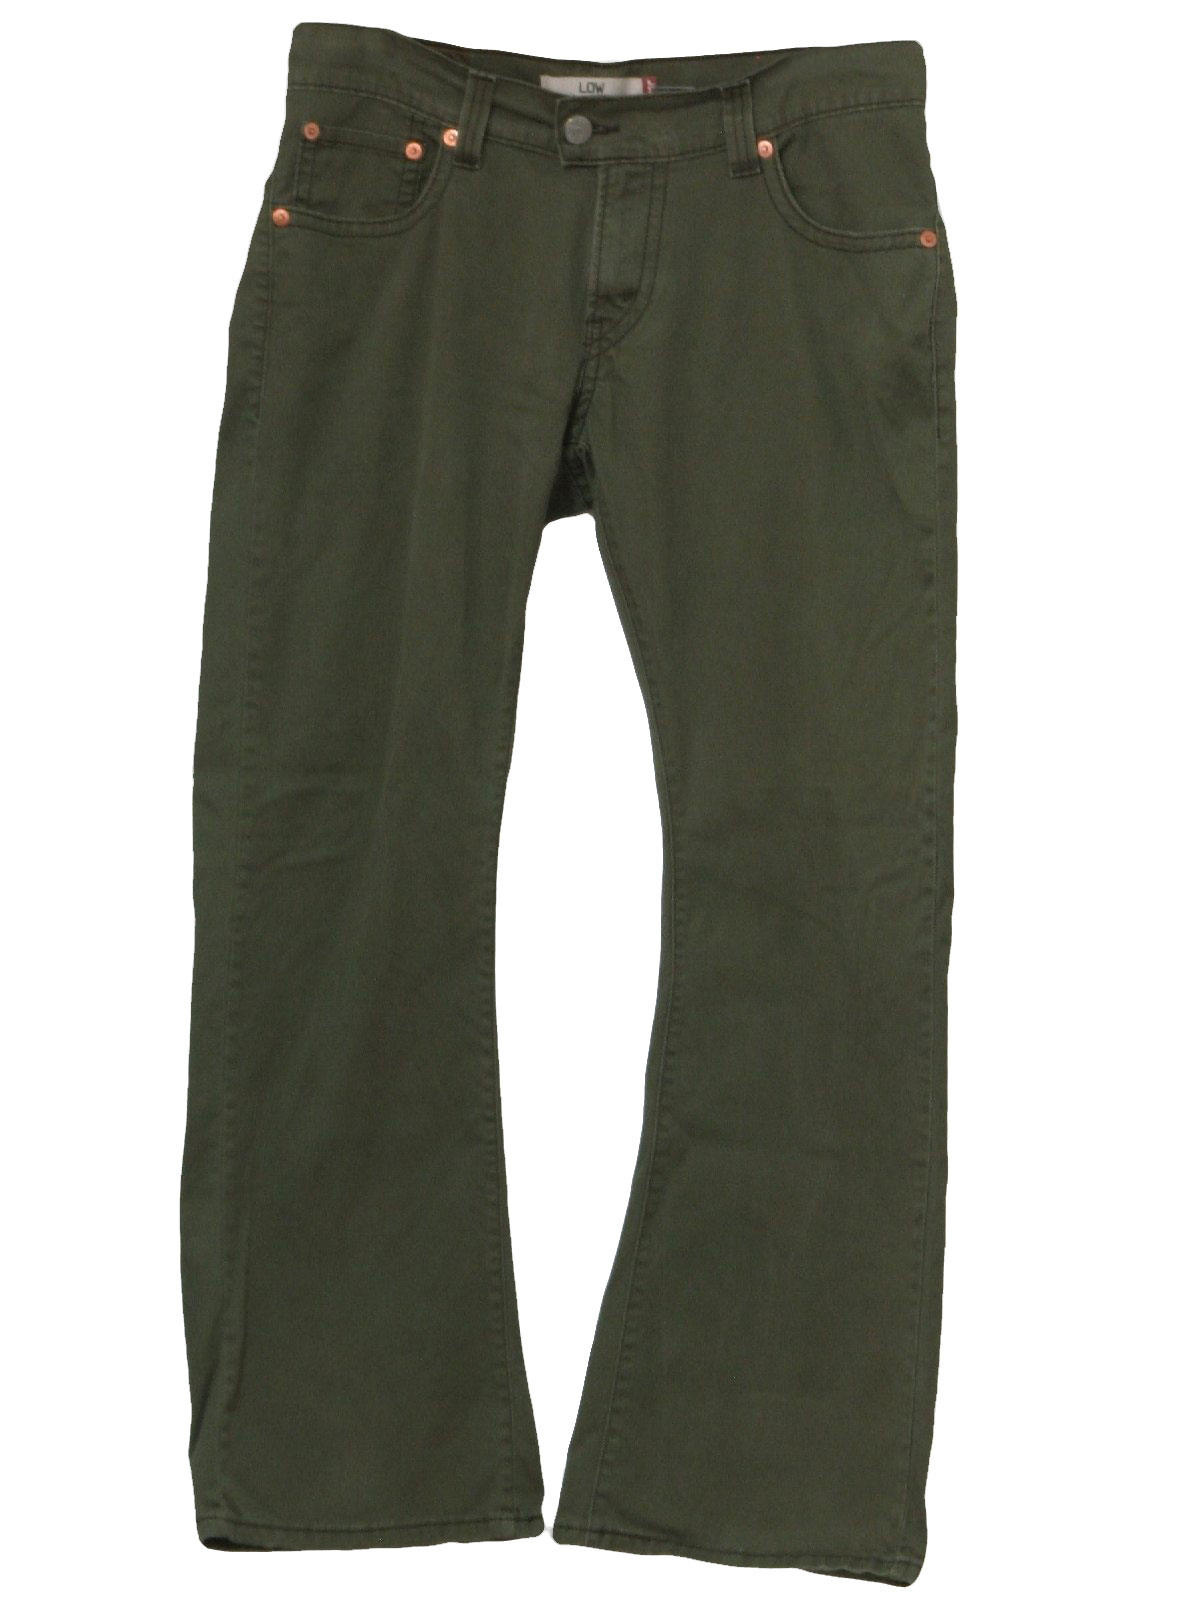 Excellent Popular Green Pants WomenBuy Cheap Green Pants Women Lots From